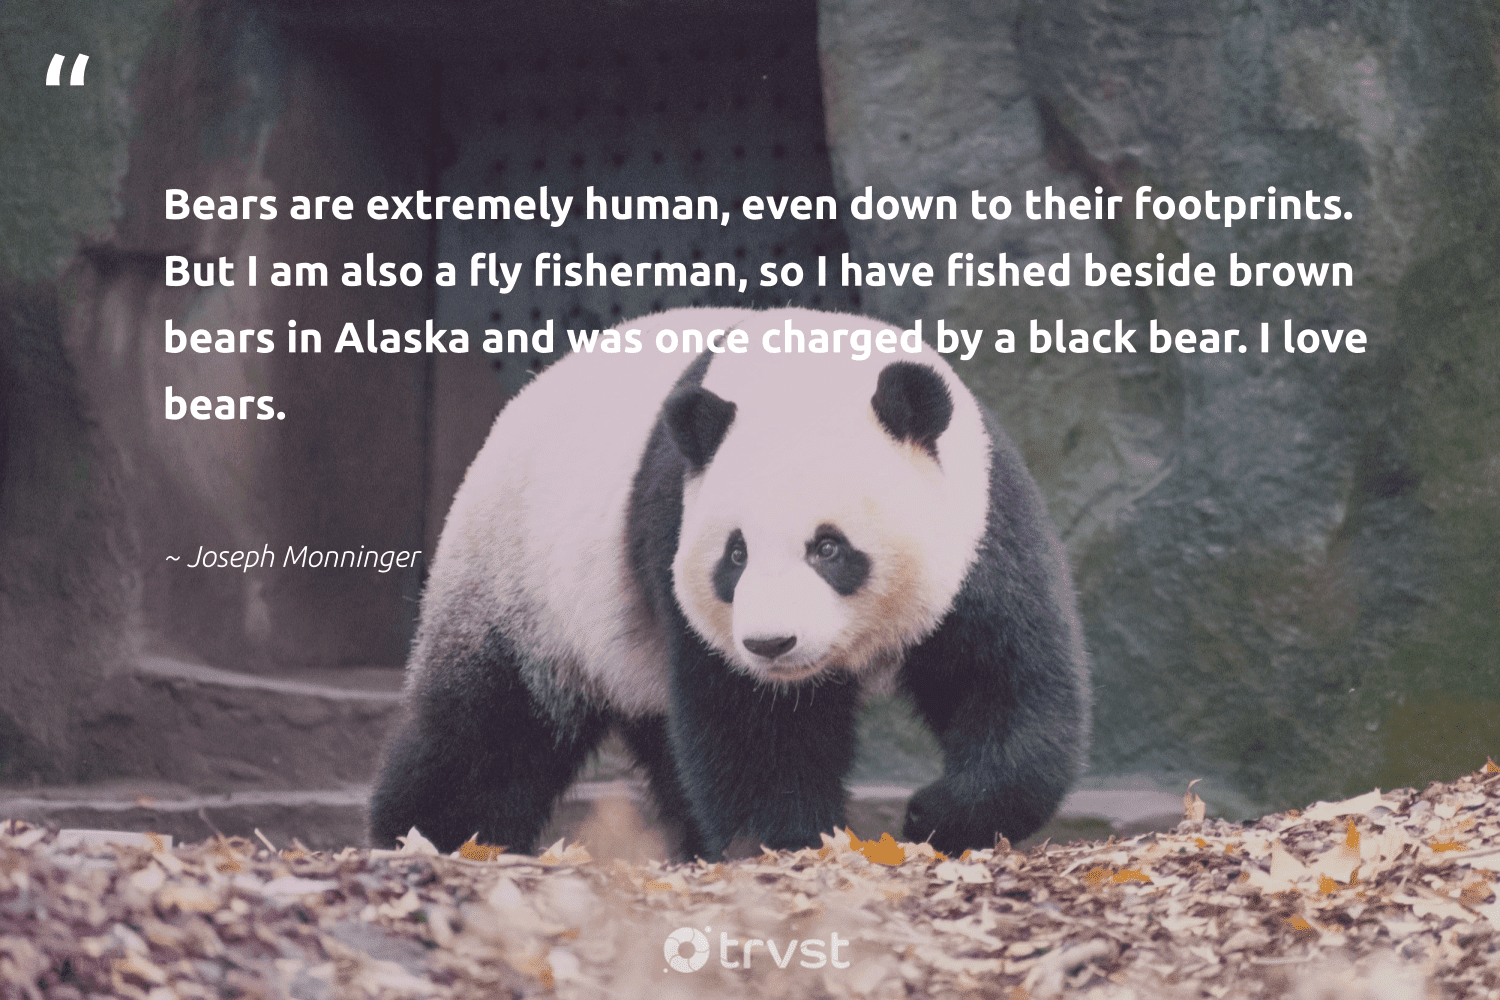 """""""Bears are extremely human, even down to their footprints. But I am also a fly fisherman, so I have fished beside brown bears in Alaska and was once charged by a black bear. I love bears.""""  - Joseph Monninger #trvst #quotes #love #bears #bear #amazingworld #beinspired #biodiversity #gogreen #splendidanimals #ecoconscious #bearlove"""